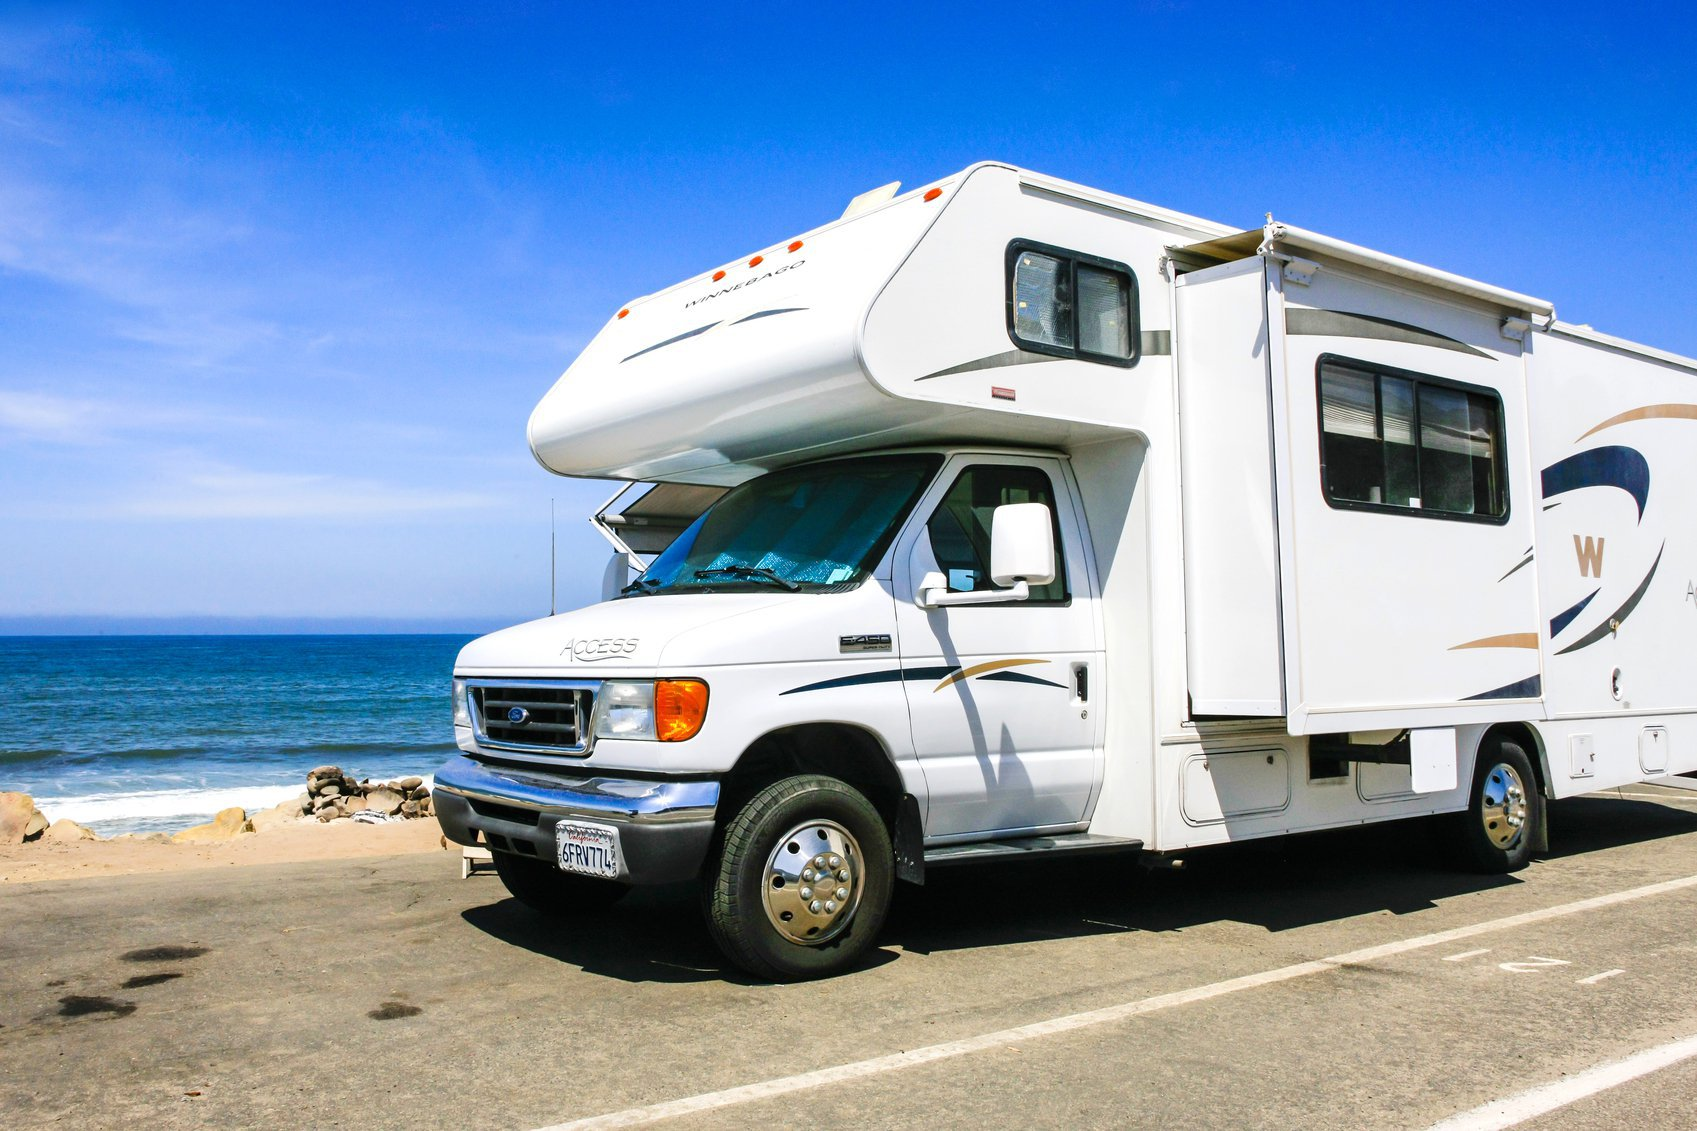 Motorhomes For Sale On Craigslist In The San Francisco Bay ...